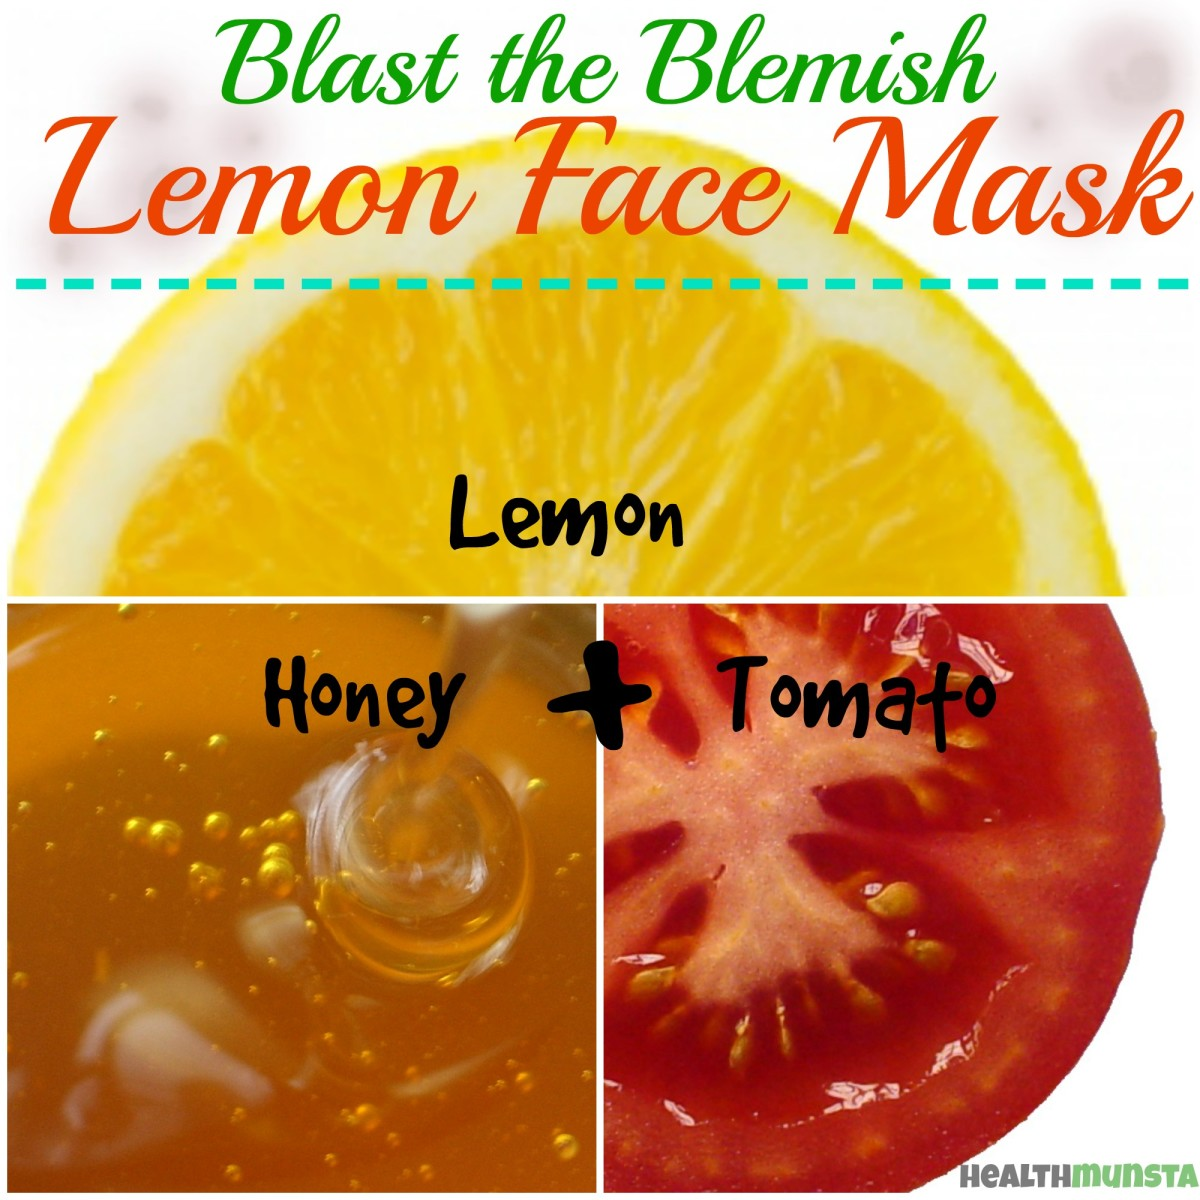 The honey, tomato, and lemon face mask will lighten any blemishes.